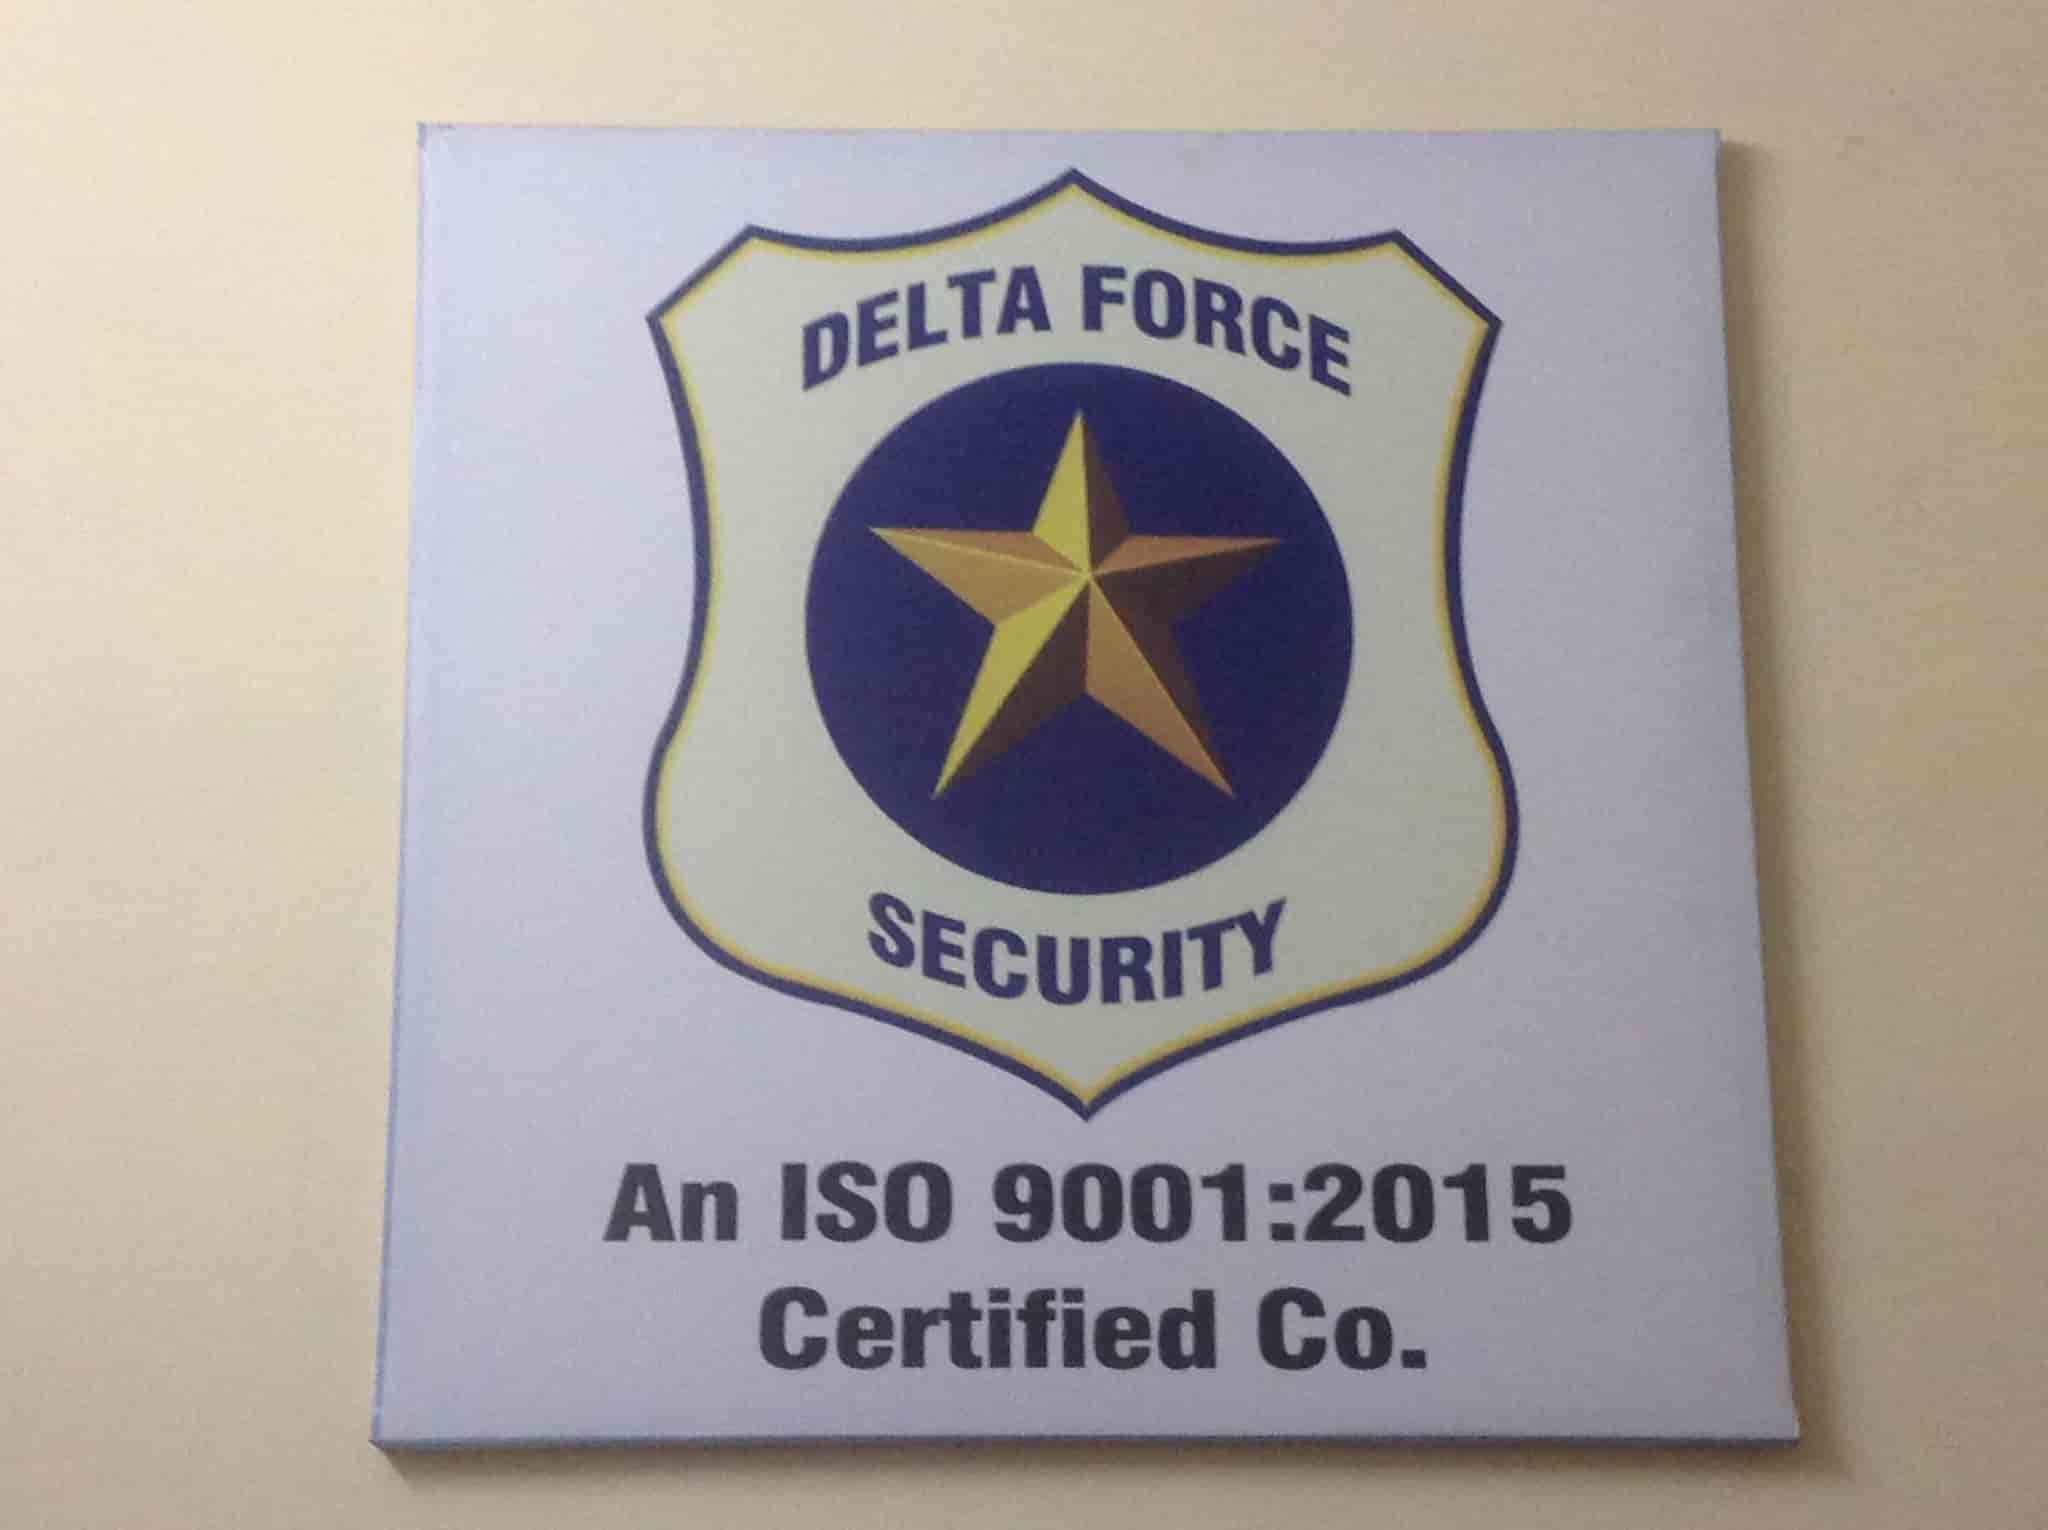 Delta Force Security Services Chandigarh Road Security Services